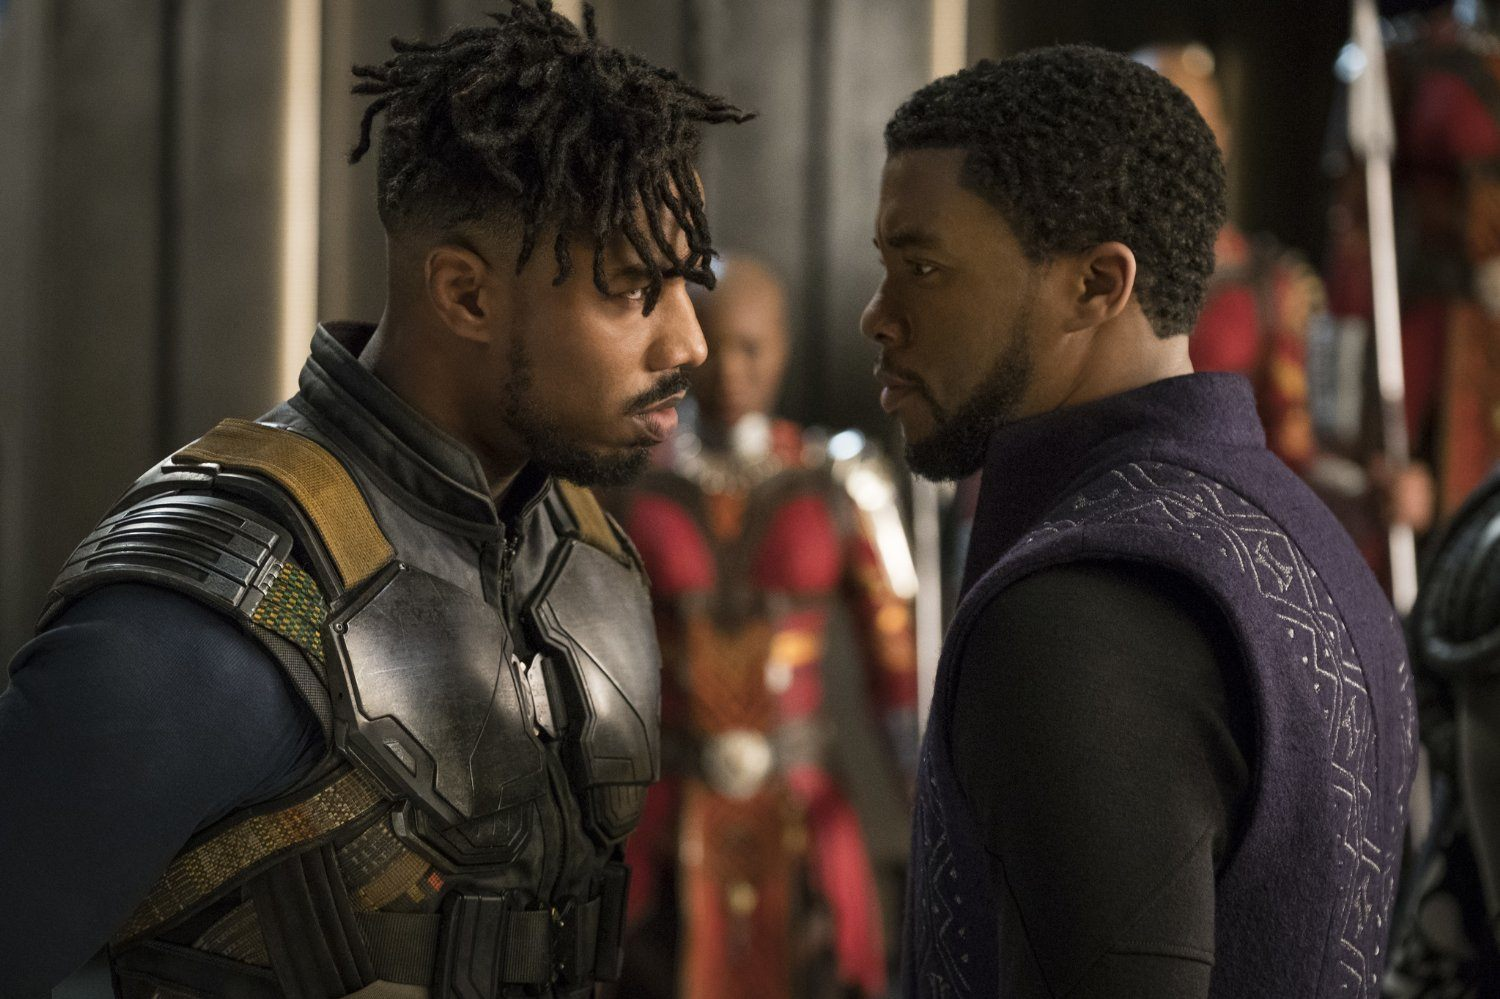 Michael B. Jordan as Killmonger stares down Chadwick Boseman as T'Challa in Black Panther